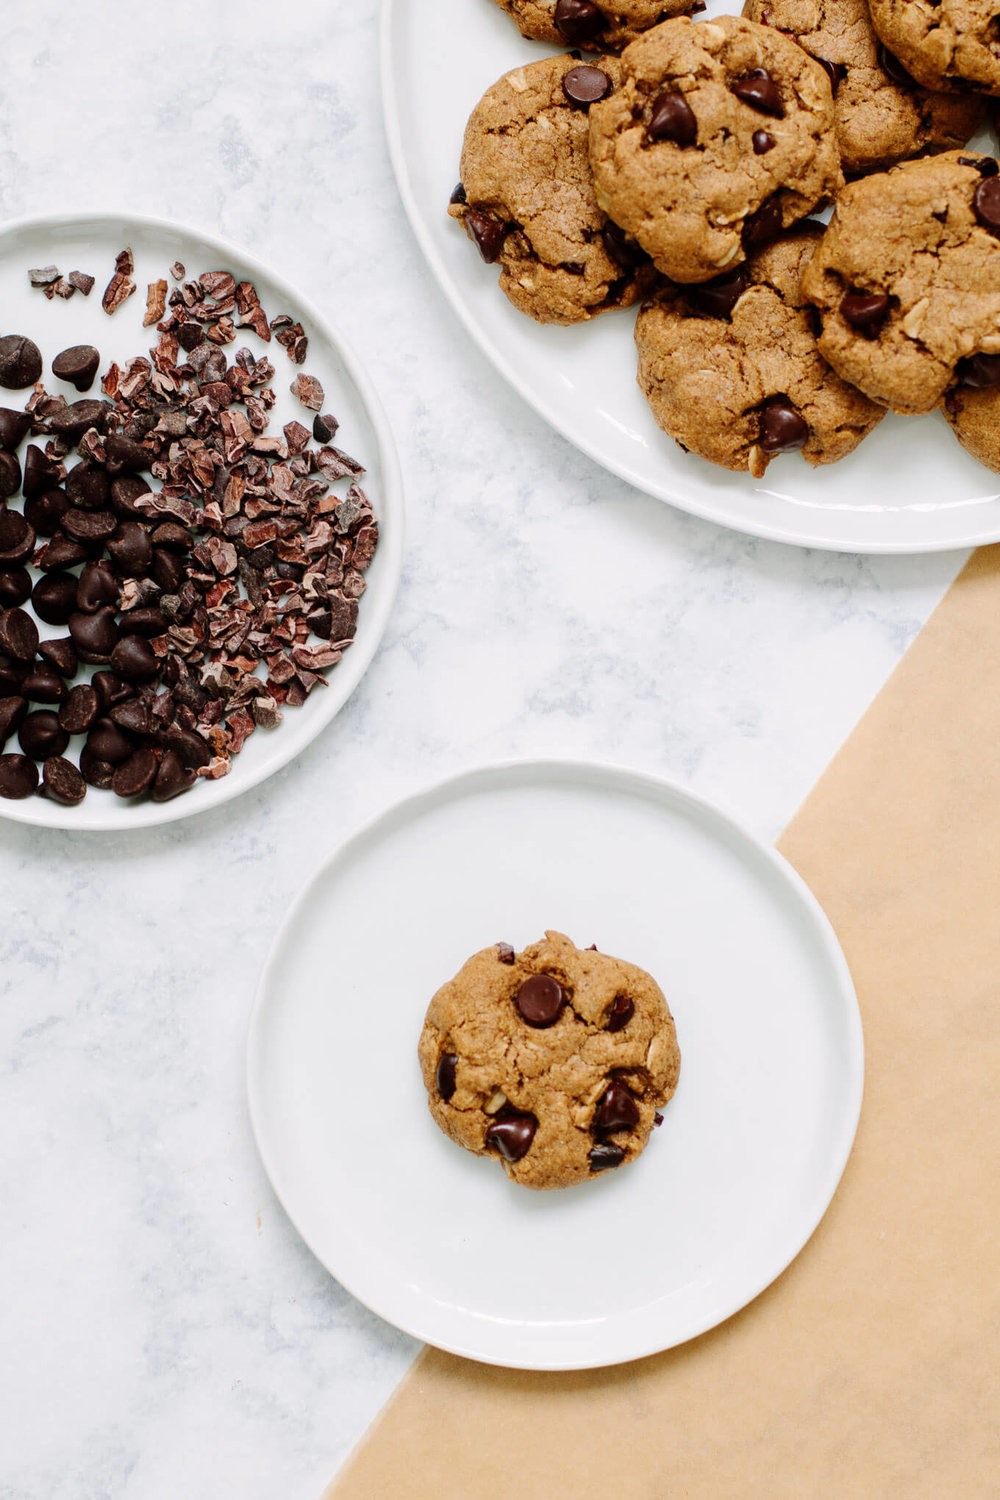 Chocolate-Chip-Cocao-Nib-Cookies-1-of-10.jpg